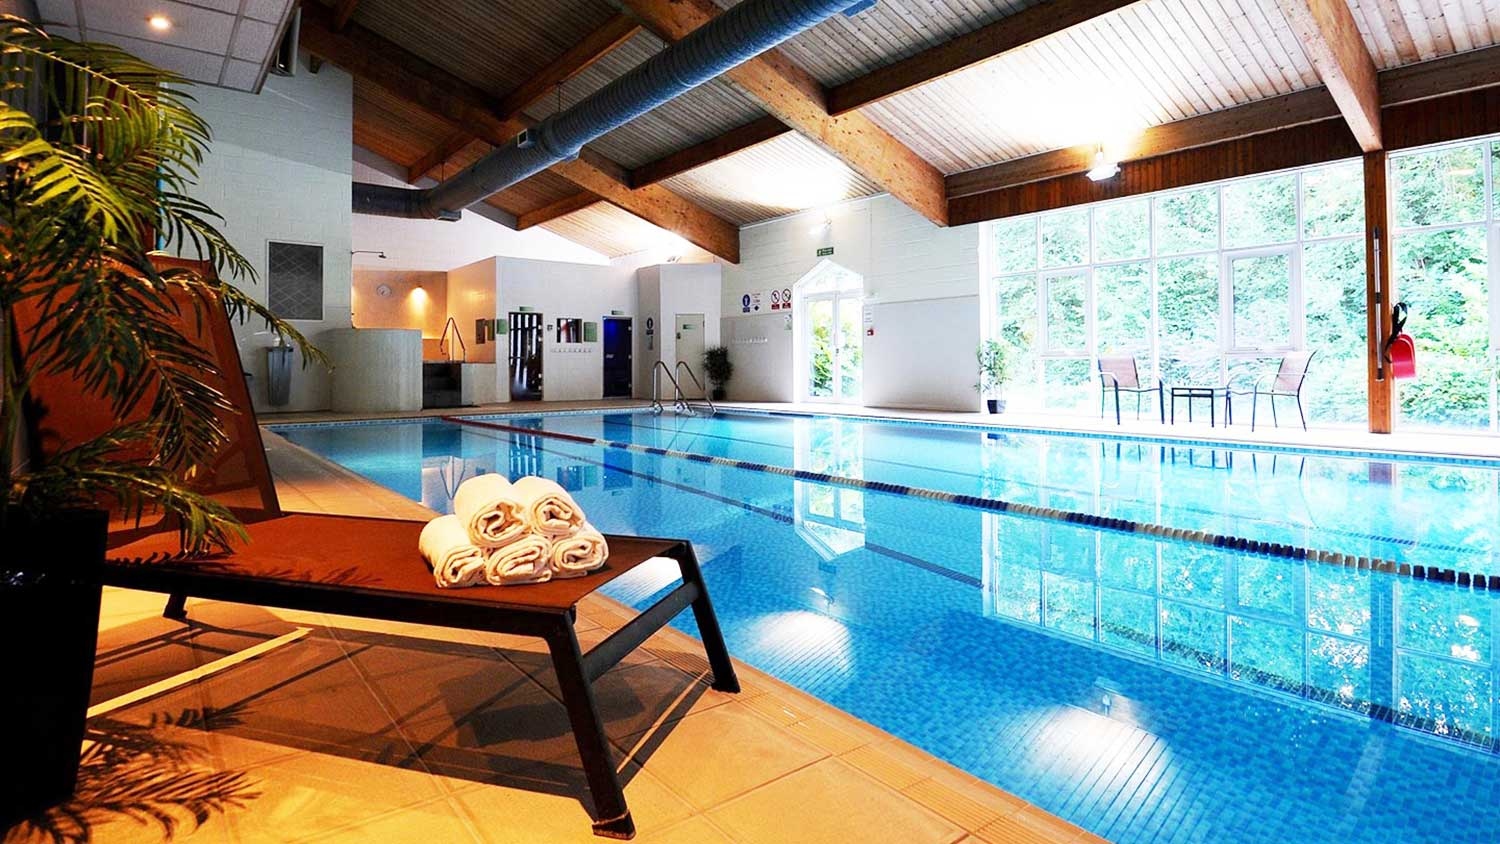 Farnham Fitness & Wellbeing Gym - swimming pool